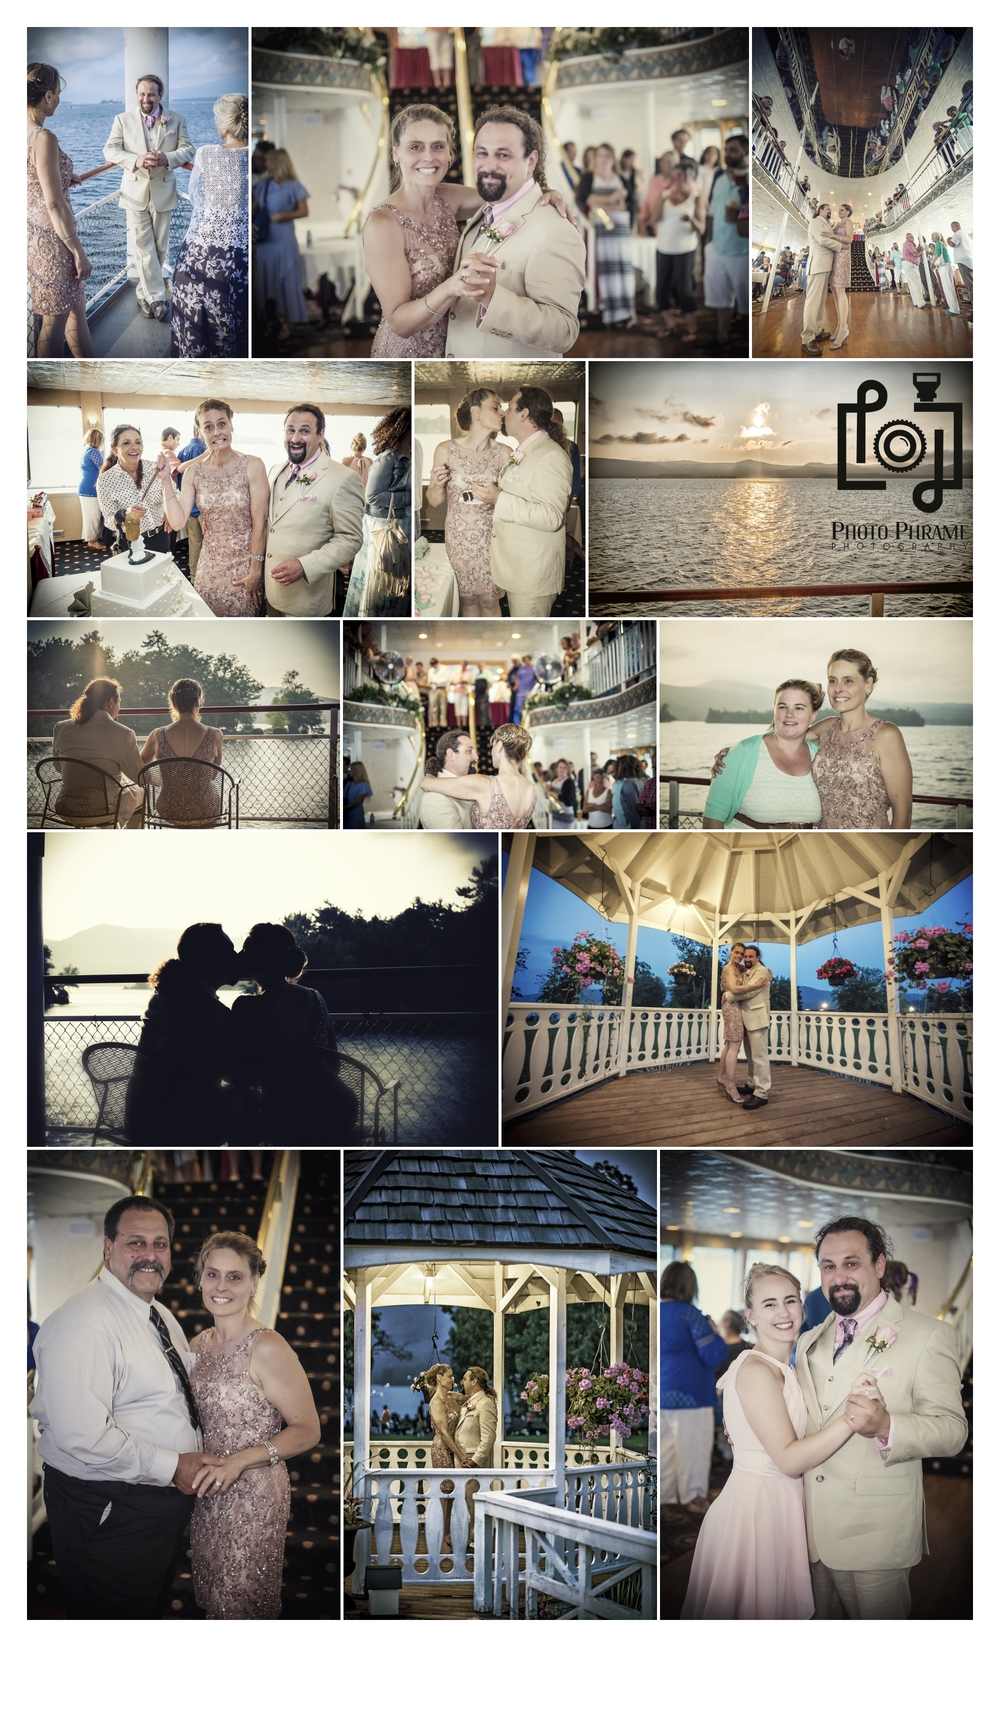 Professional Wedding Photography, Lake George, New York